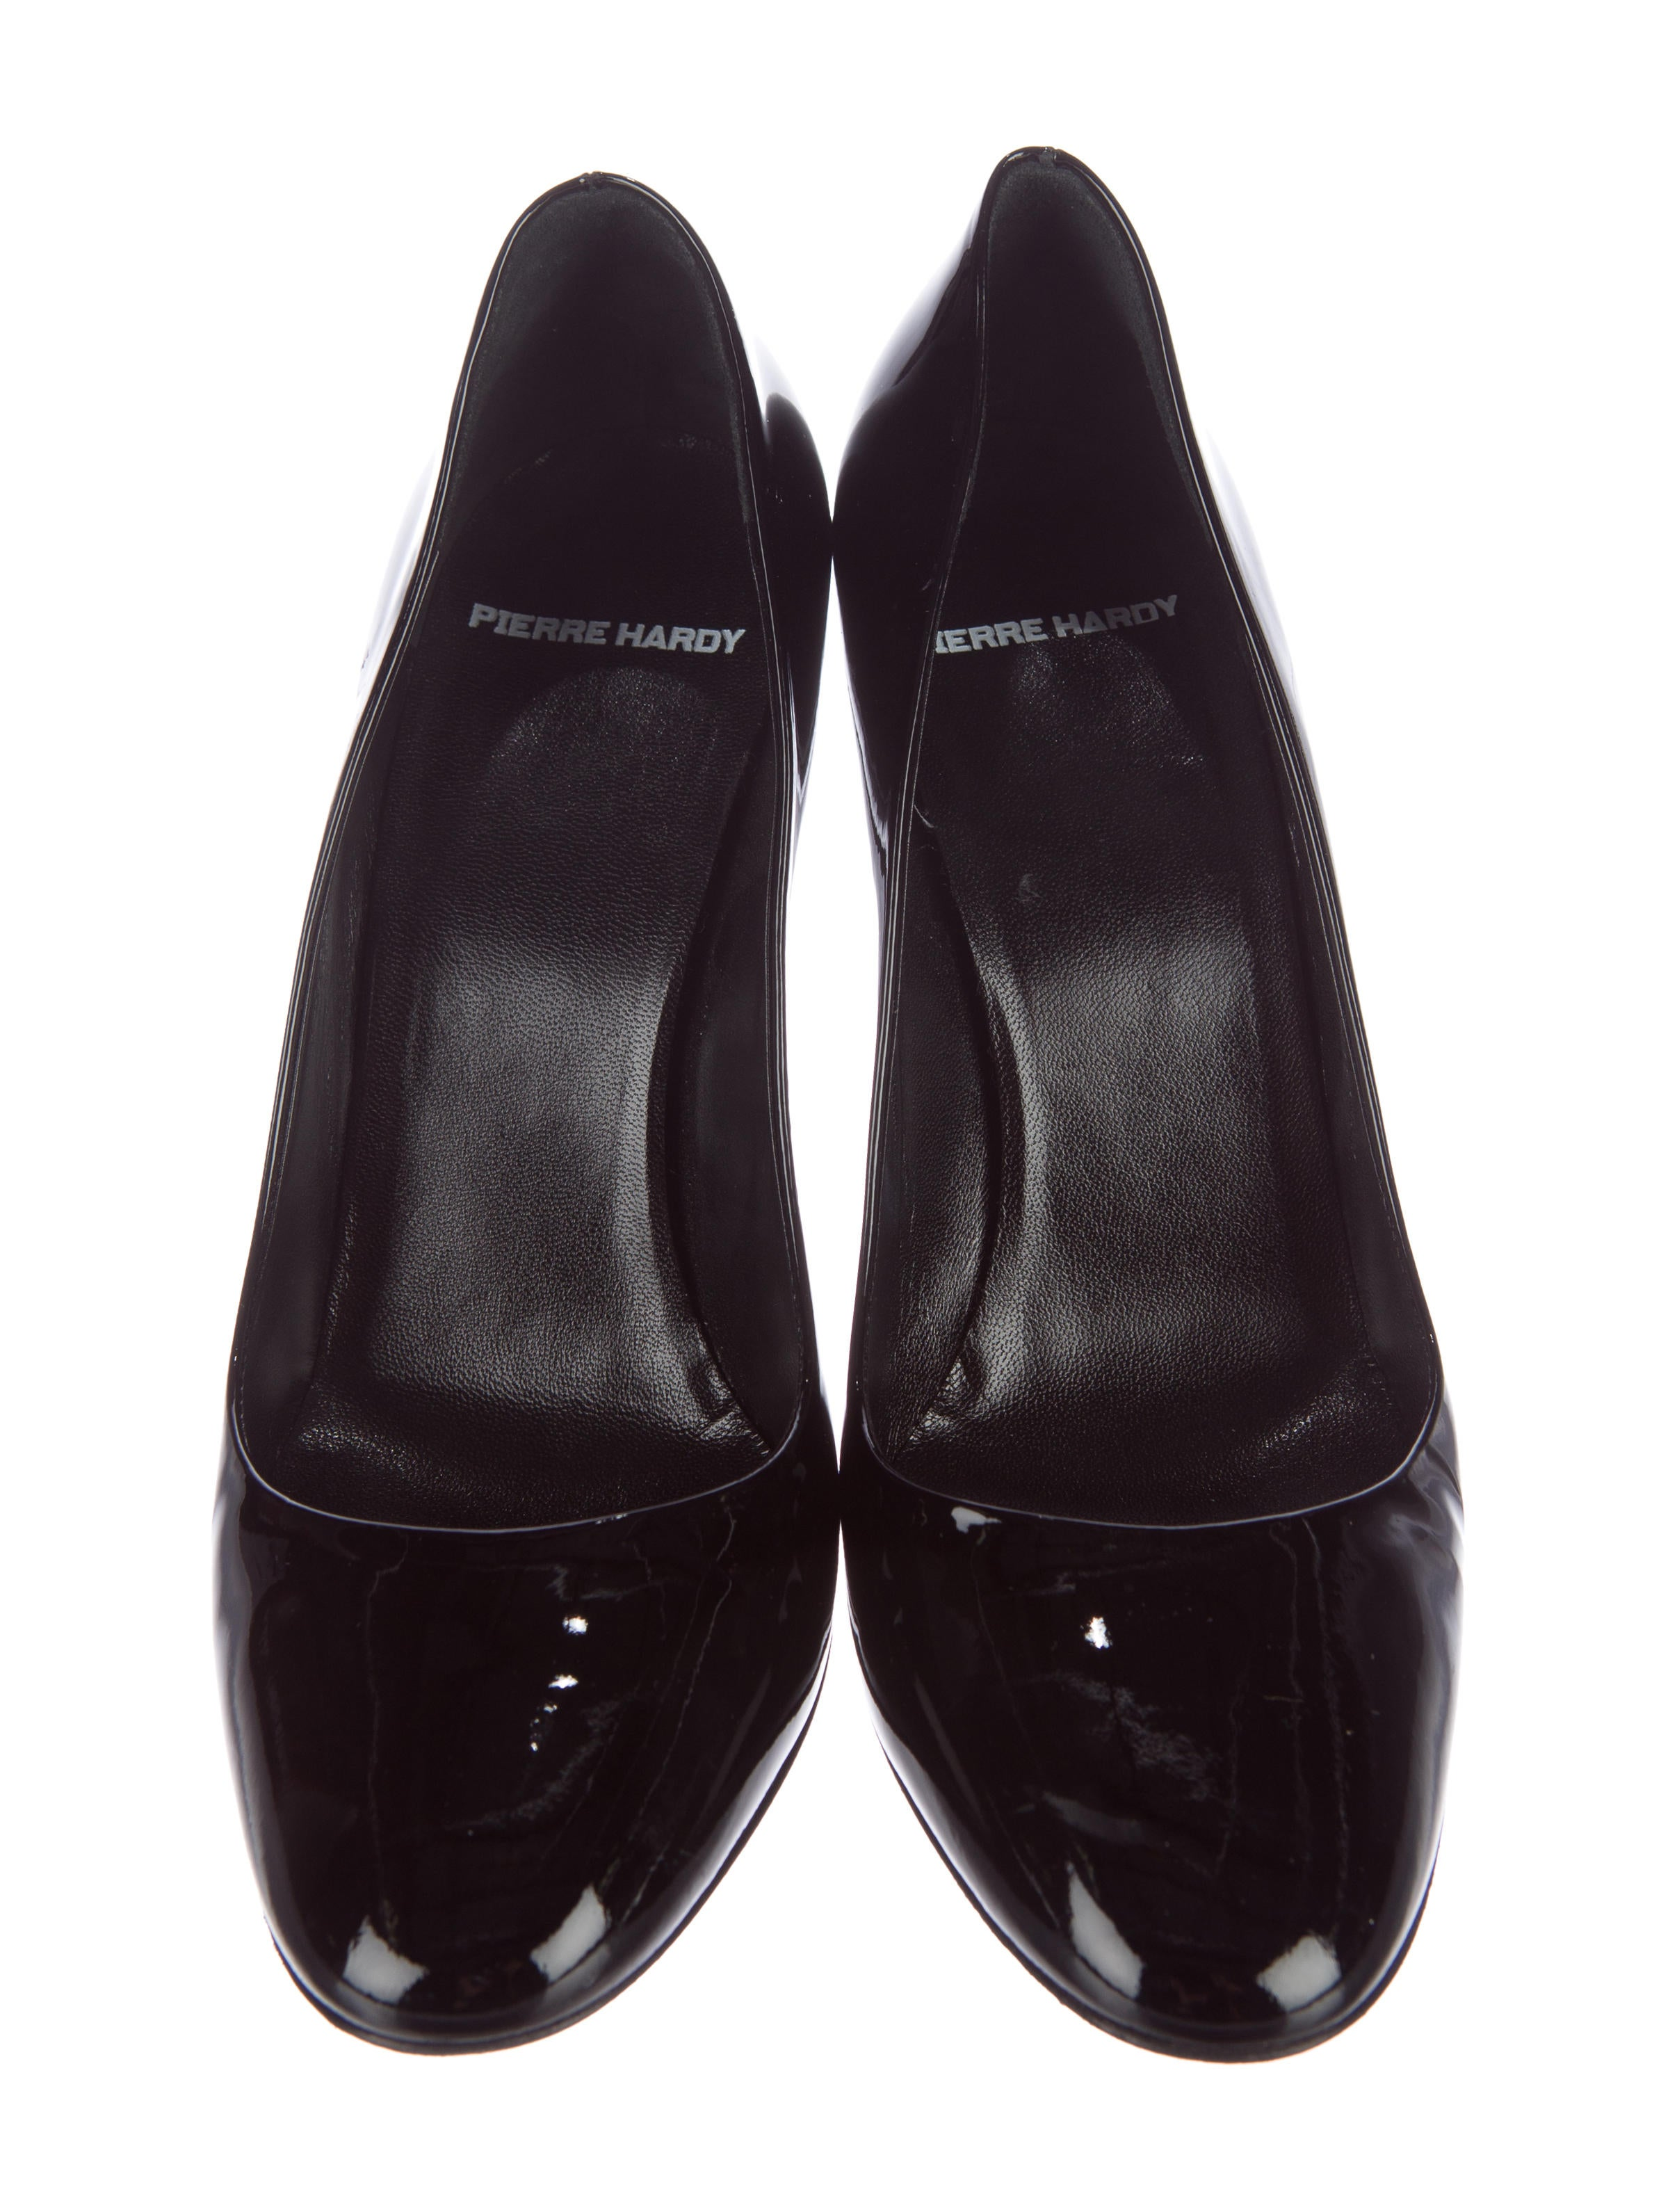 Pierre Hardy Patent Leather Round Toe Pumps Shoes  : PIE234643enlarged from www.therealreal.com size 2412 x 3181 jpeg 481kB